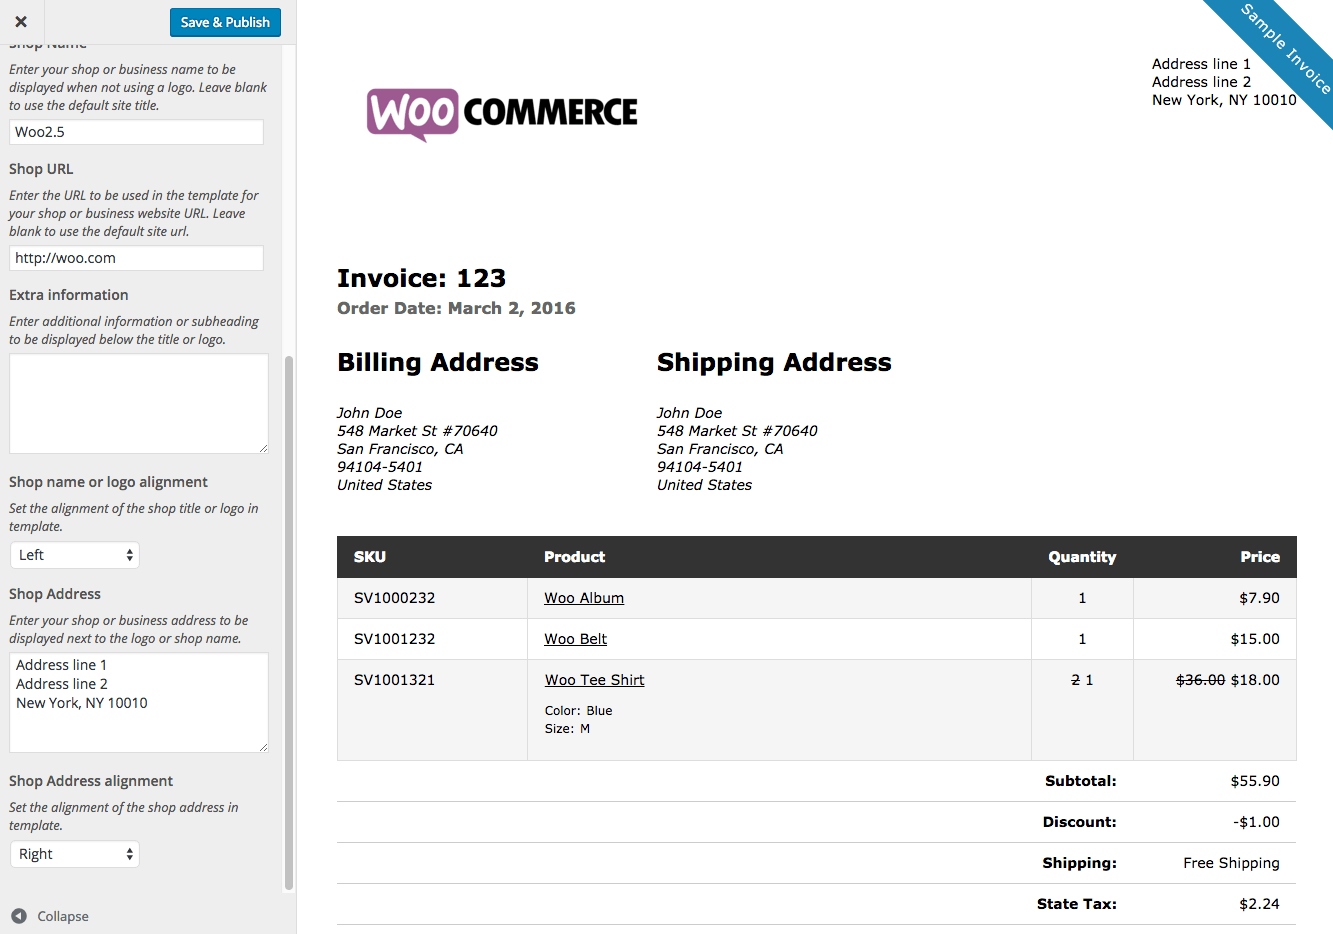 Howcanigettallerus  Unique Woocommerce Print Invoices Amp Packing Lists  Woocommerce Docs With Likable Woocommerce Print Invoices  Packing Lists Customizer With Amazing Invoice Example Template Also Free Commercial Invoice In Addition Professional Invoices Template And Best Small Business Invoicing Software As Well As Invoice Payable Additionally Ups Commercial Invoice Template From Docswoocommercecom With Howcanigettallerus  Likable Woocommerce Print Invoices Amp Packing Lists  Woocommerce Docs With Amazing Woocommerce Print Invoices  Packing Lists Customizer And Unique Invoice Example Template Also Free Commercial Invoice In Addition Professional Invoices Template From Docswoocommercecom